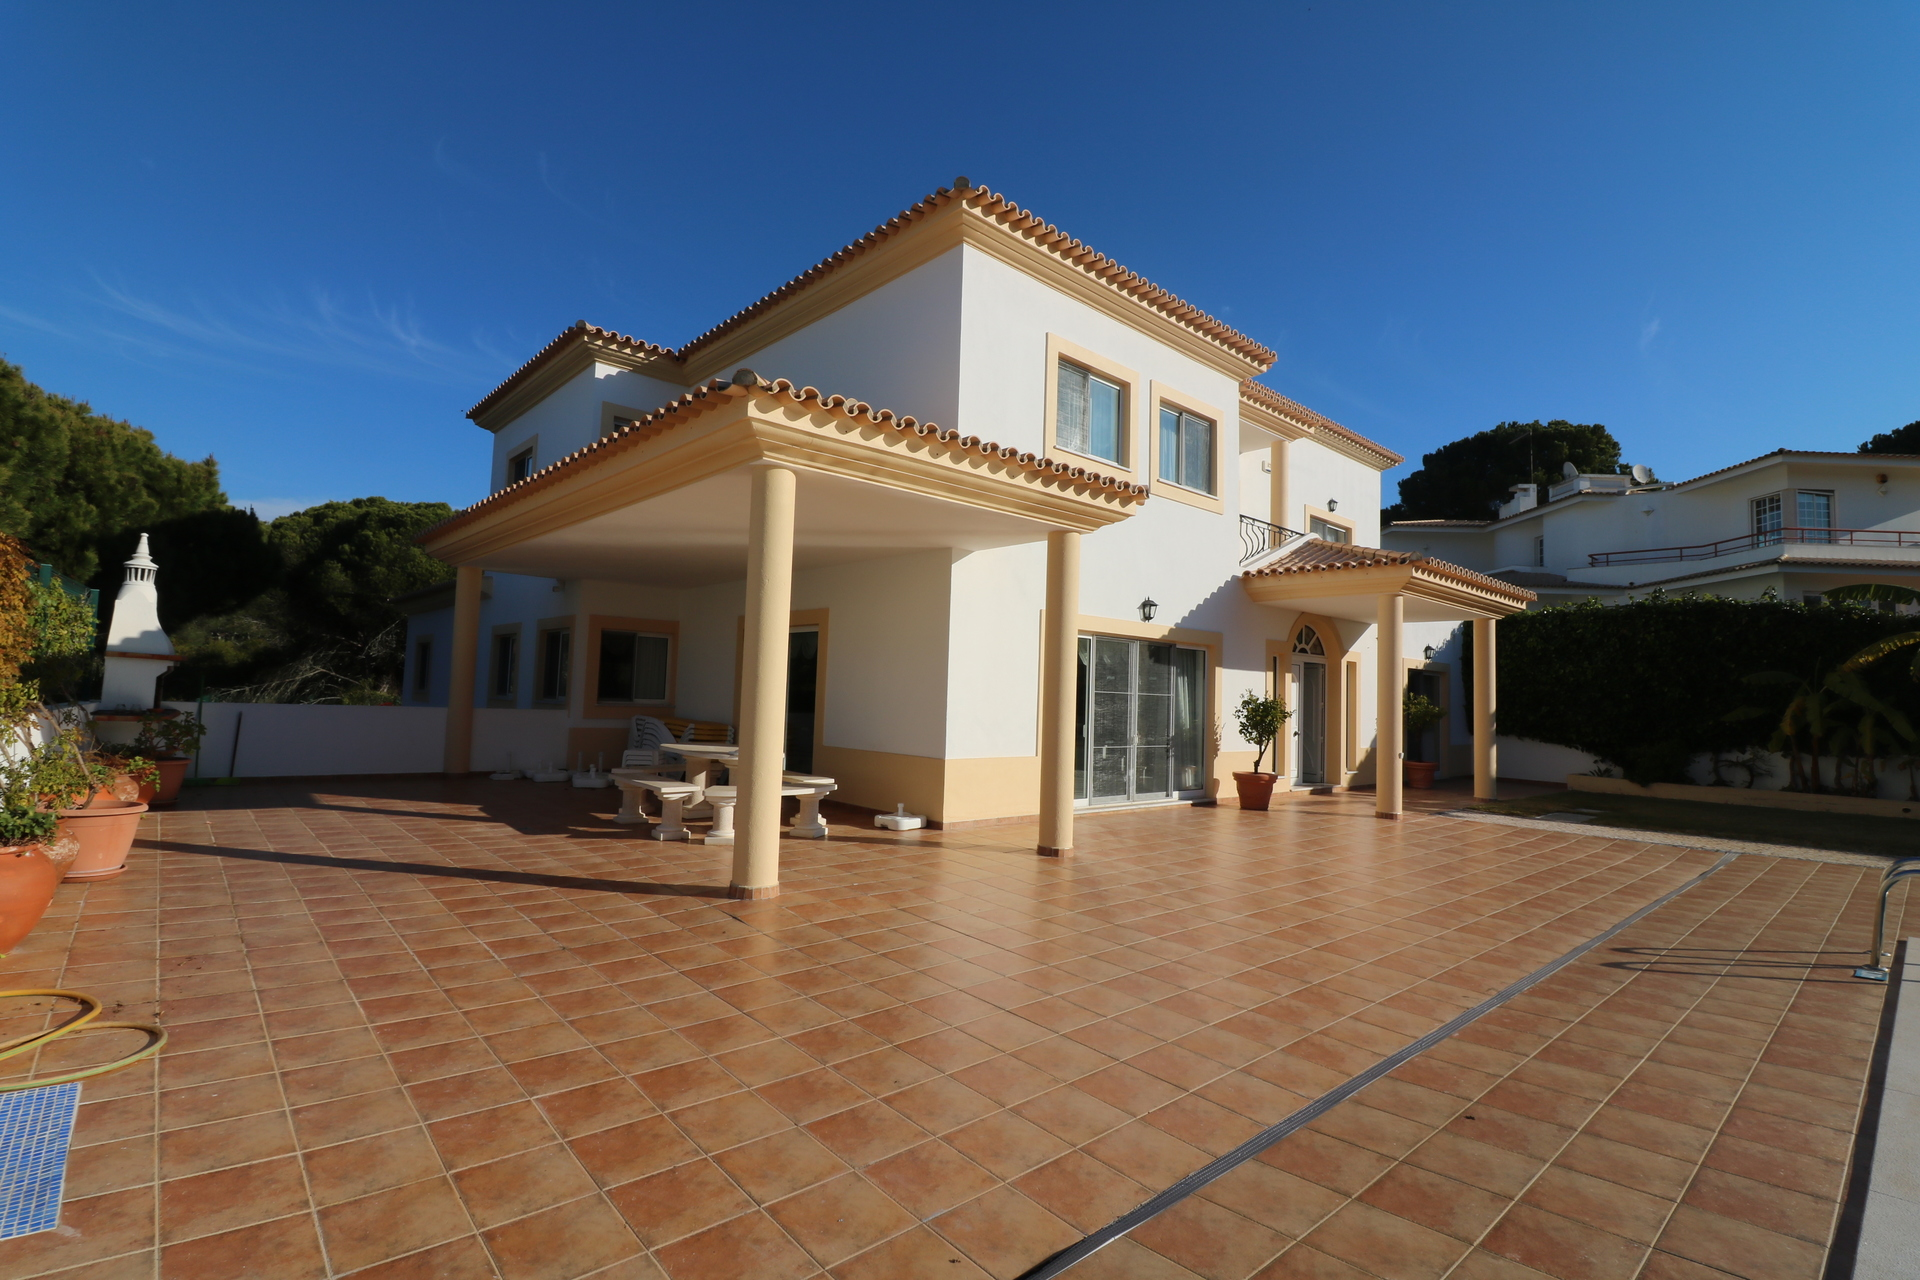 5 Bedroom Villa Almancil, Central Algarve Ref: JV10297